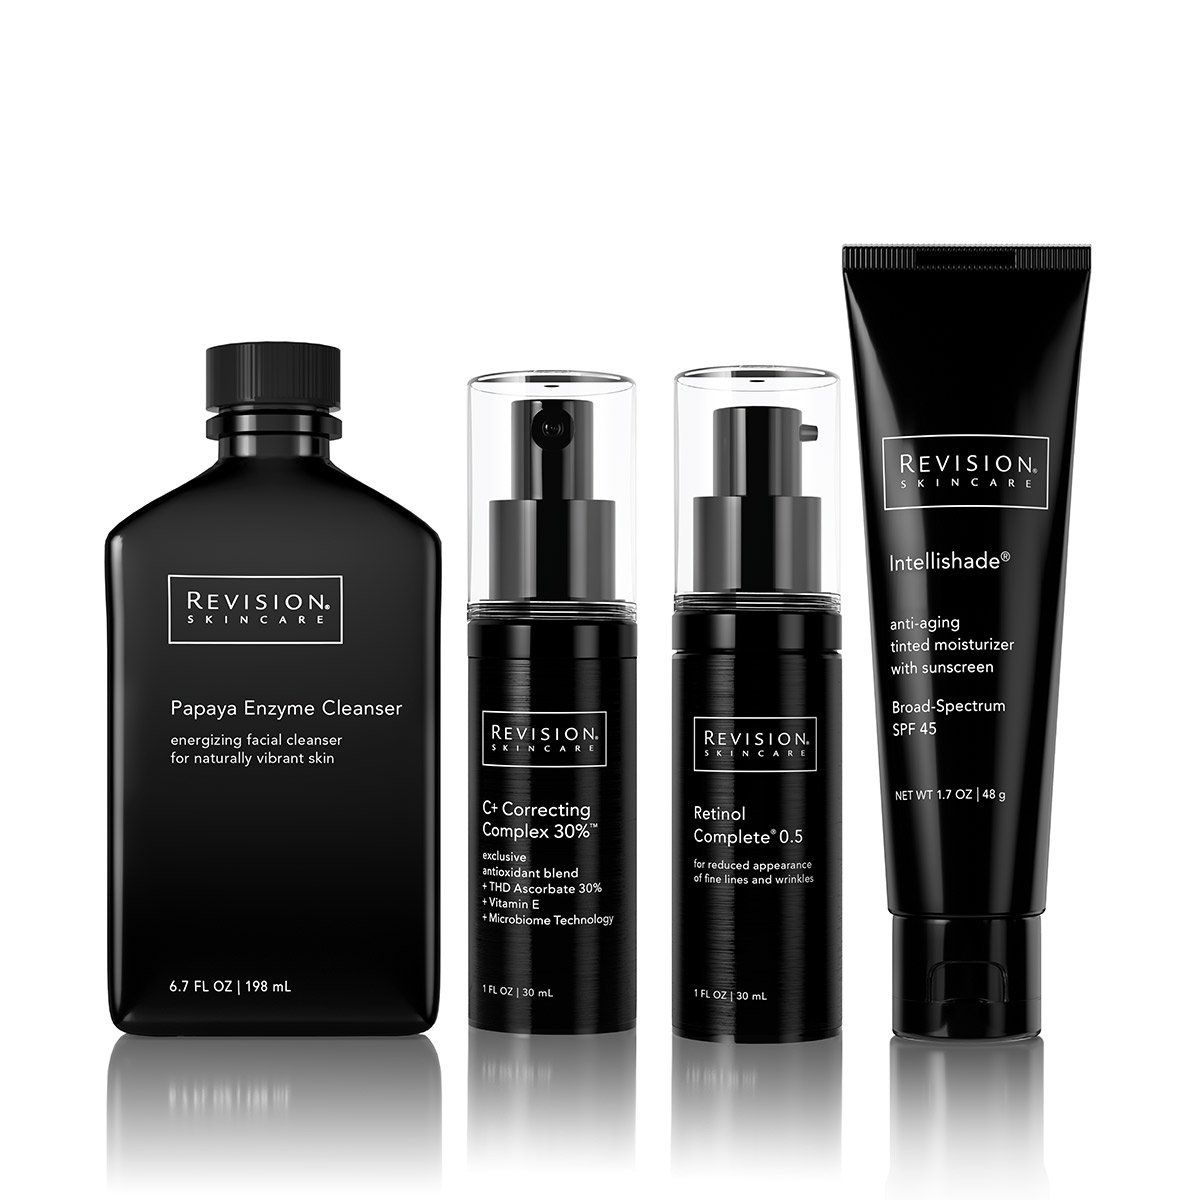 Pin By Blake O Donnell On Christmas Wish List 2020 In 2020 Revision Skincare Moisturizer With Spf Skin Care System